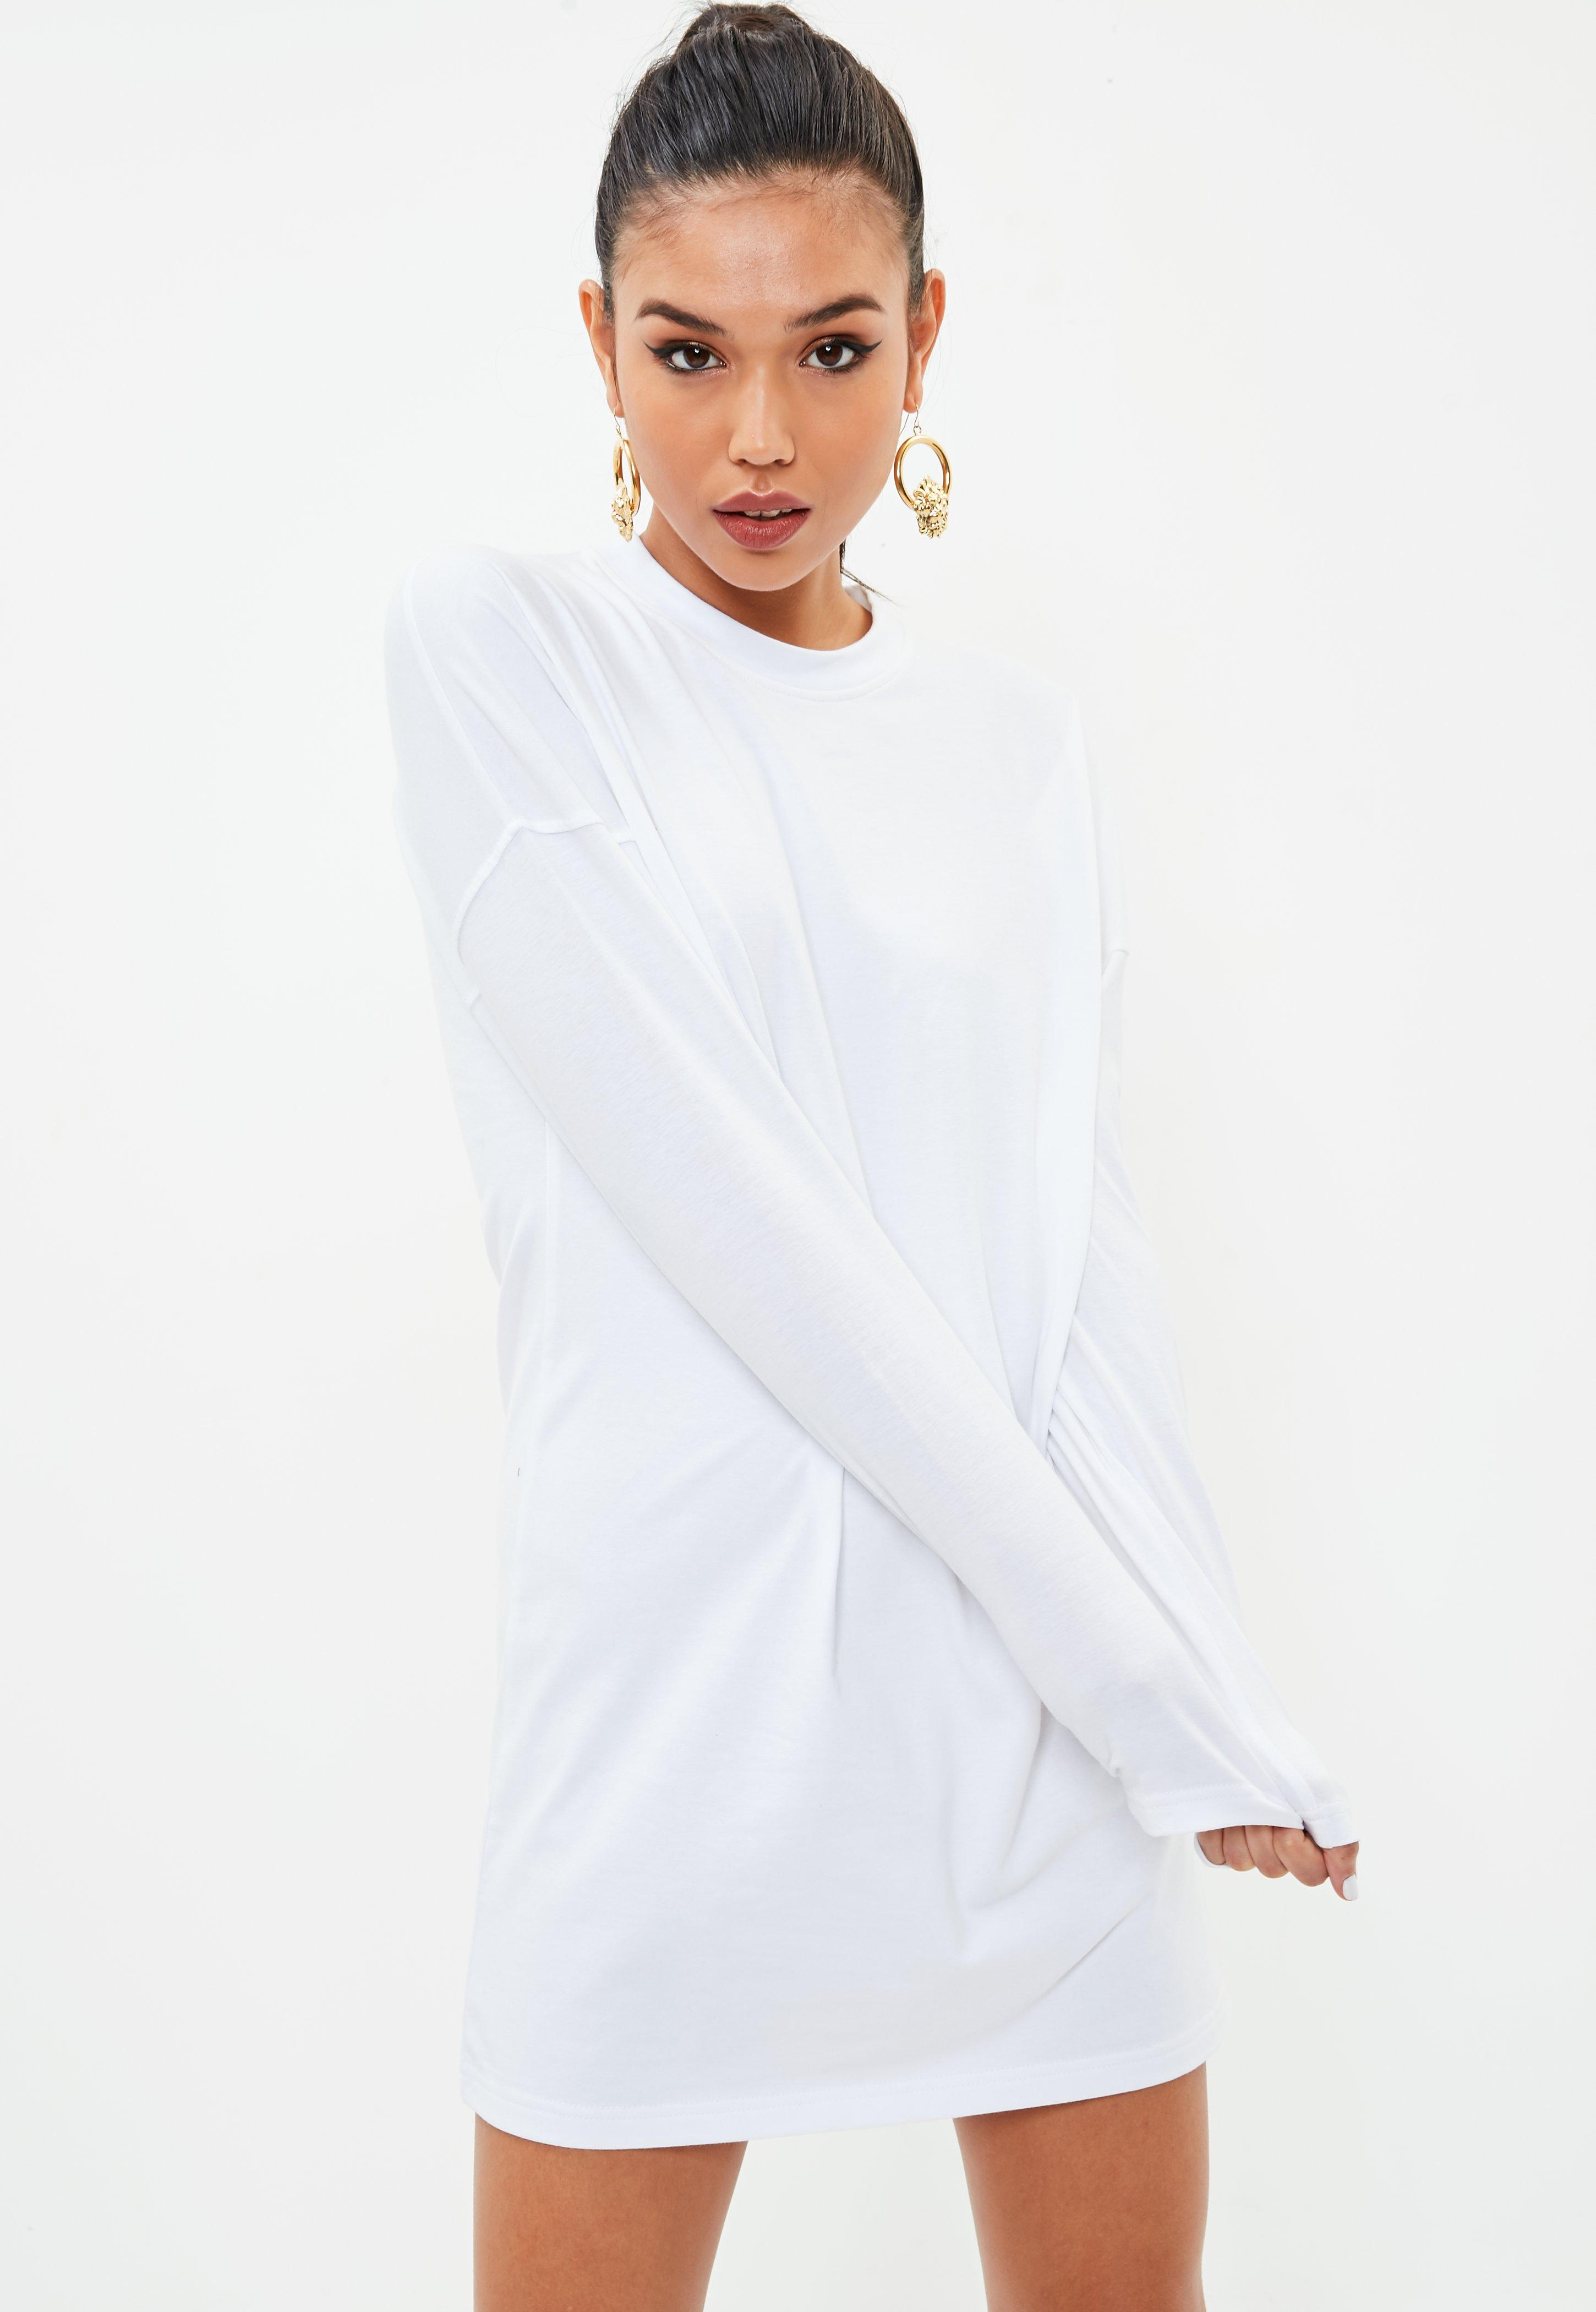 2018 New For Sale Missguided Long Sleeve Tshirt Dress Pay With Paypal Cheap Online Wi3Yq5VM